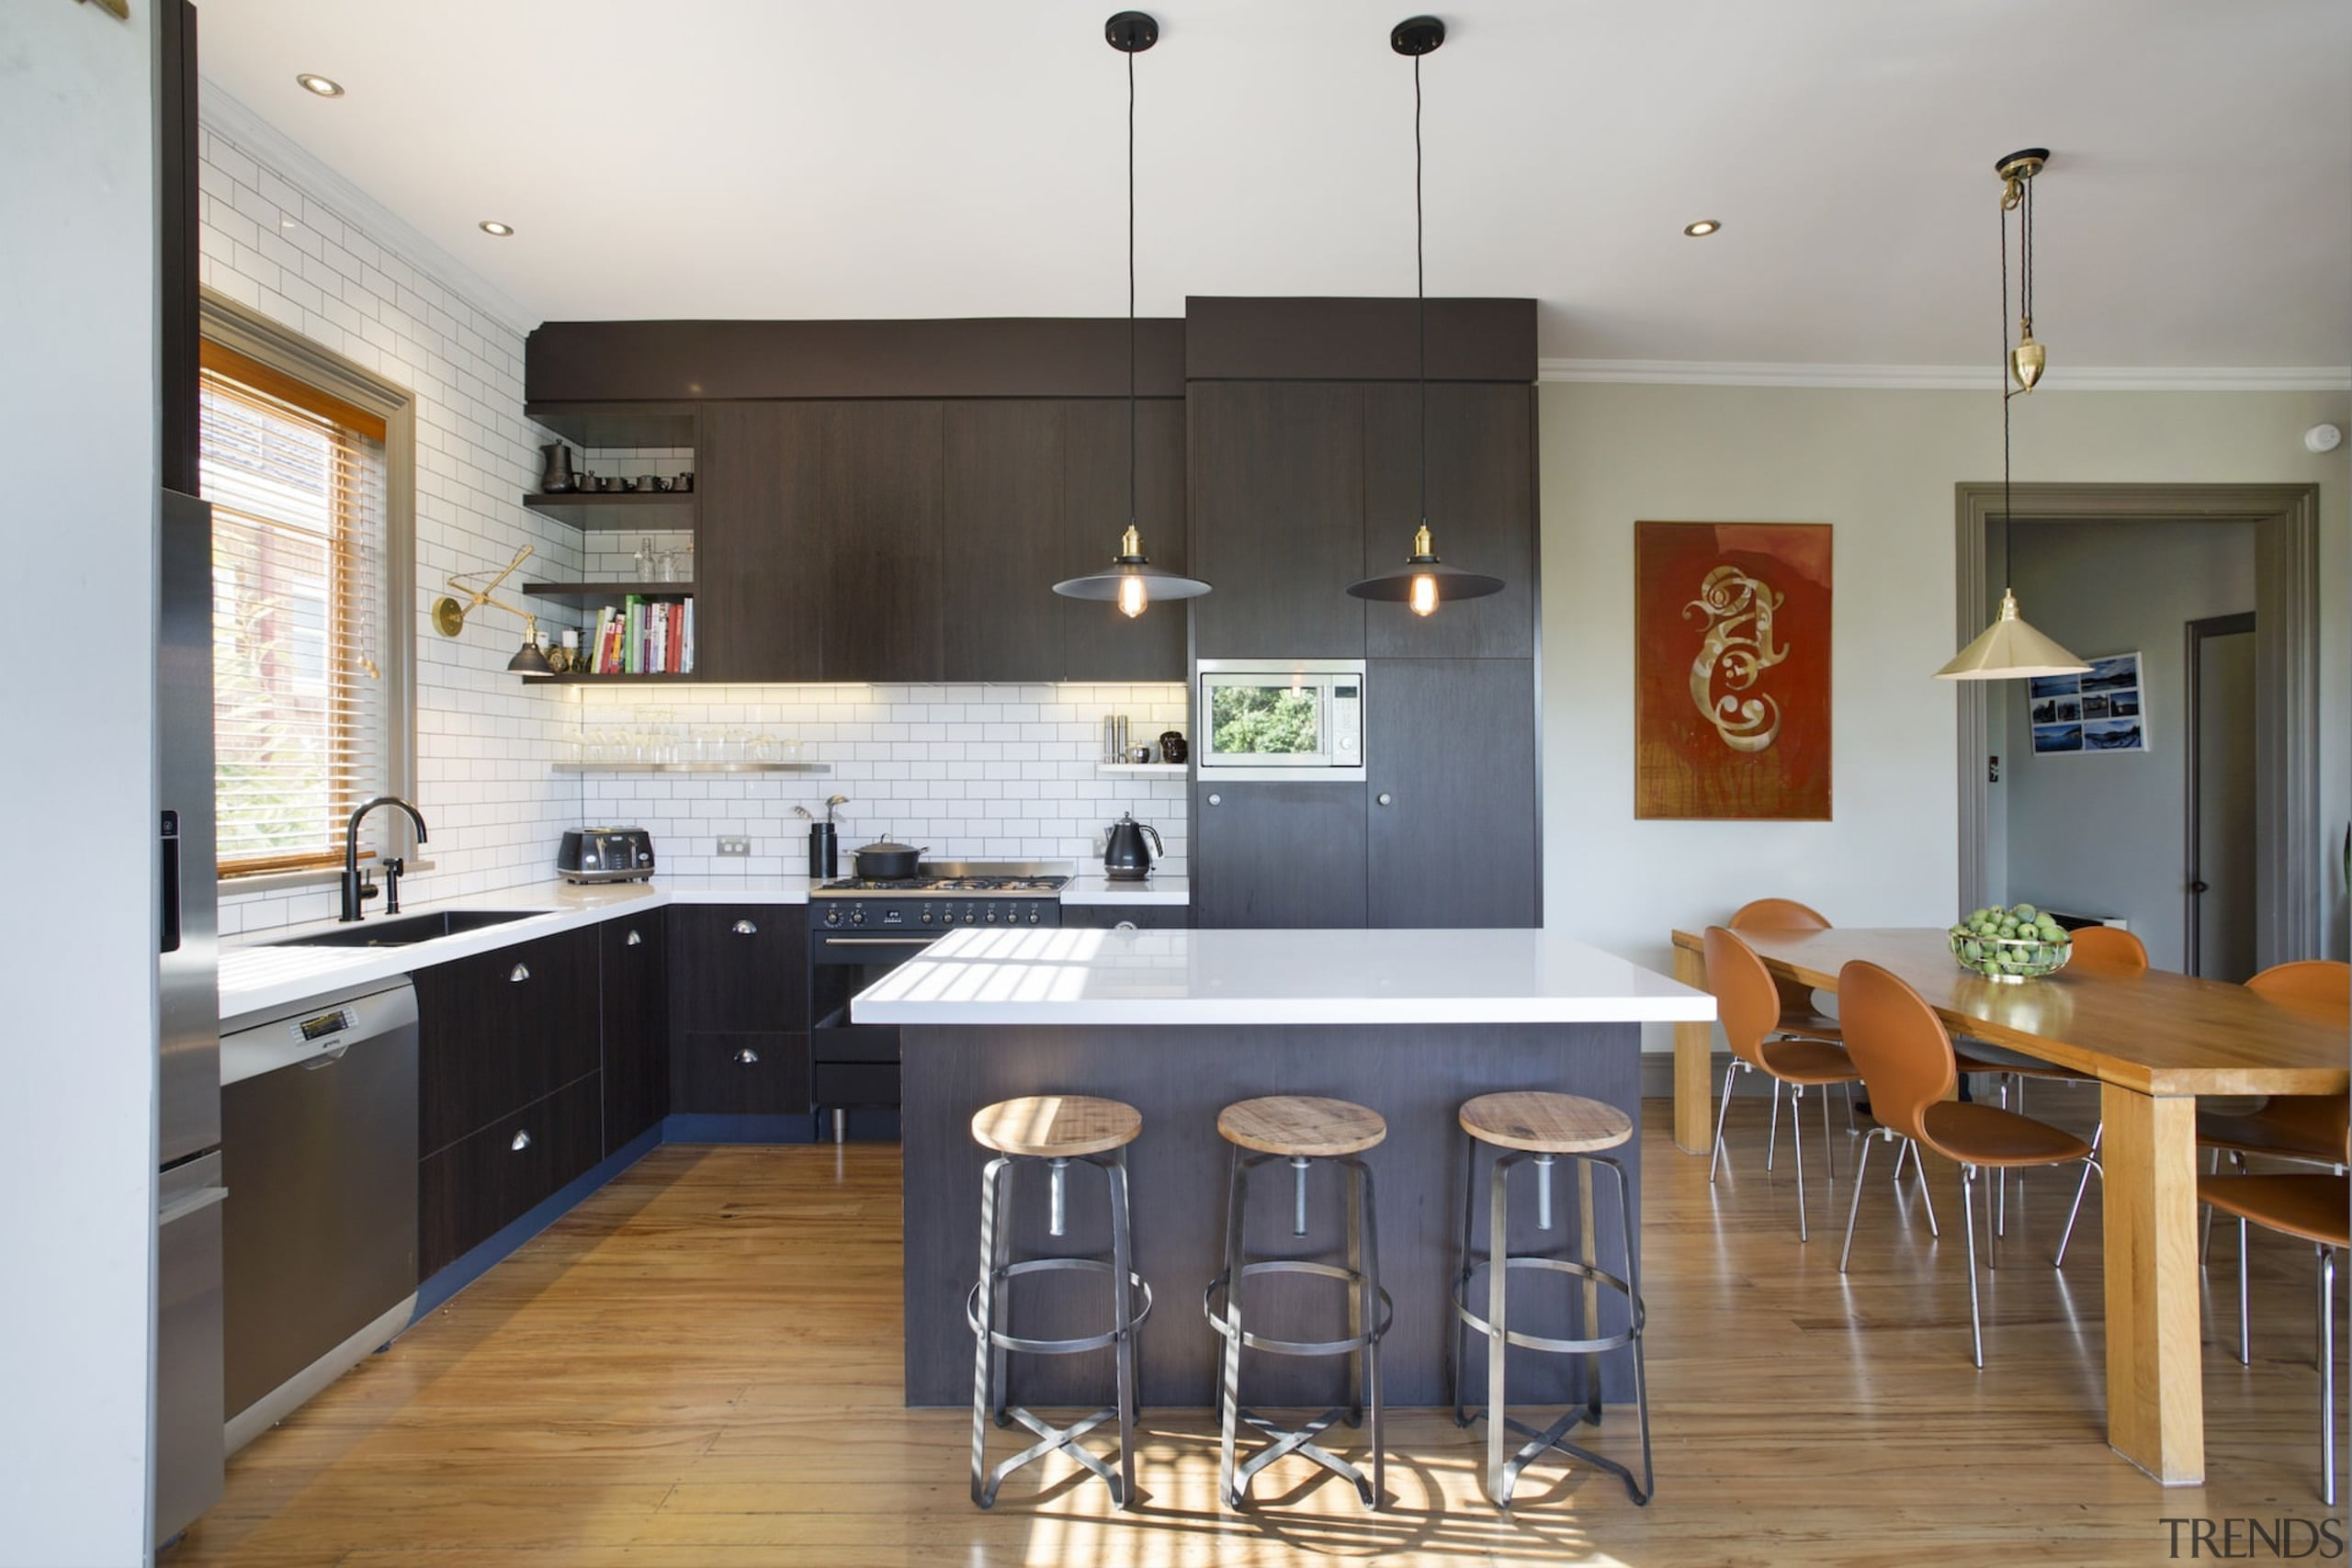 Moving to an 'L' shape kitchen means there's cabinetry, countertop, cuisine classique, interior design, kitchen, real estate, room, white